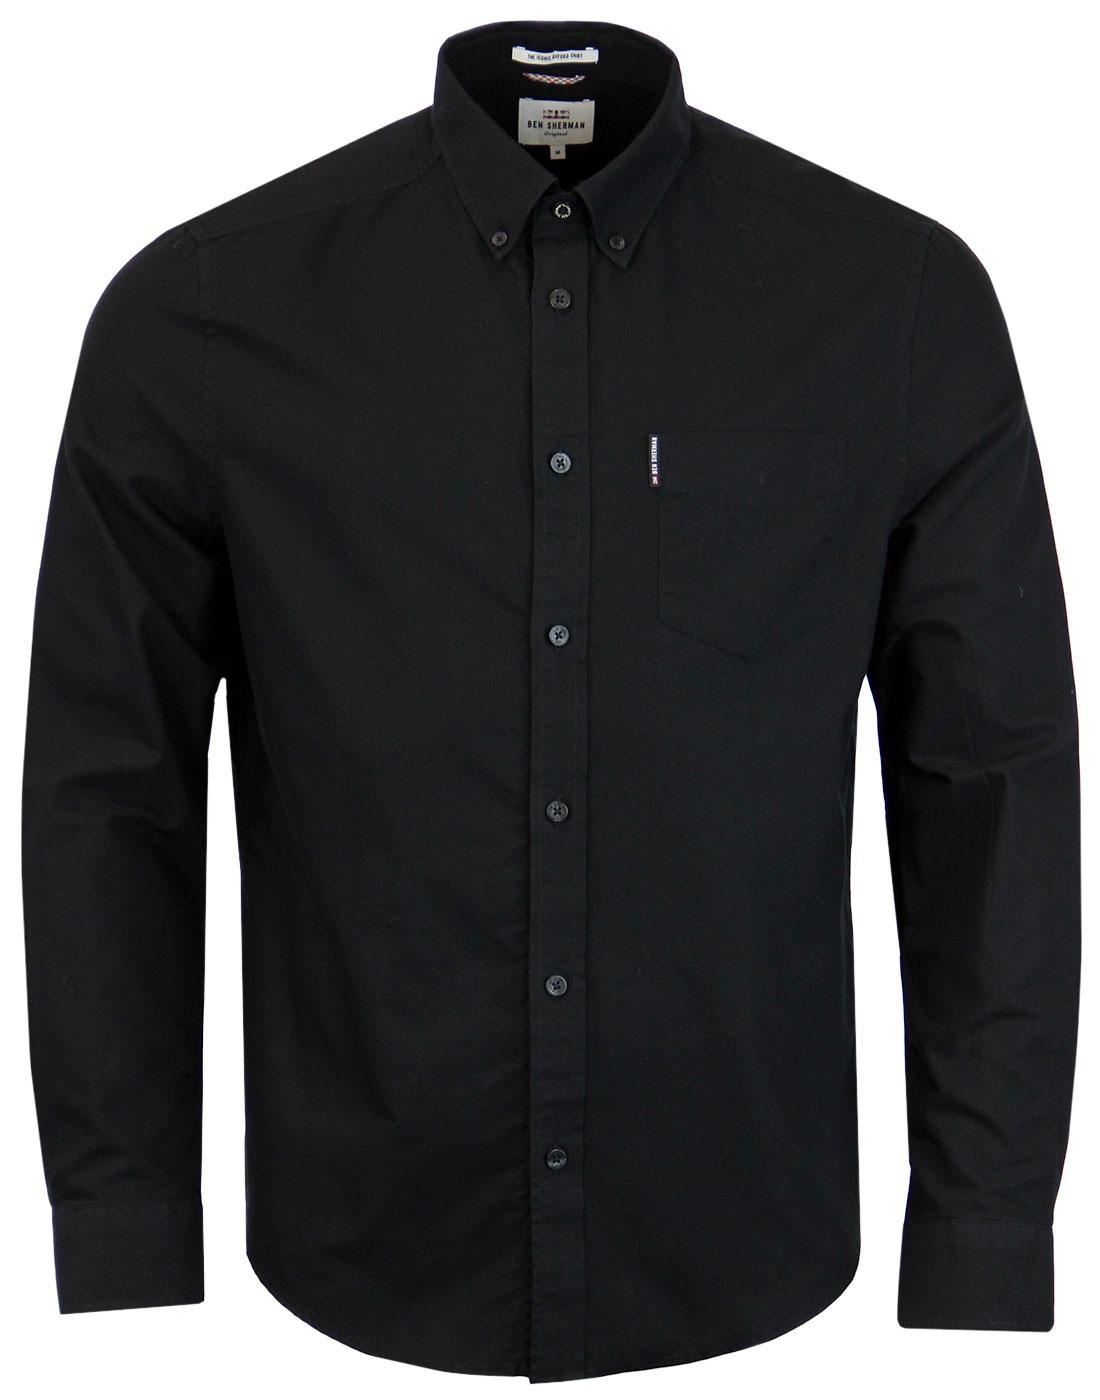 BEN SHERMAN Men's Mod Button Down Oxford Shirt (B)